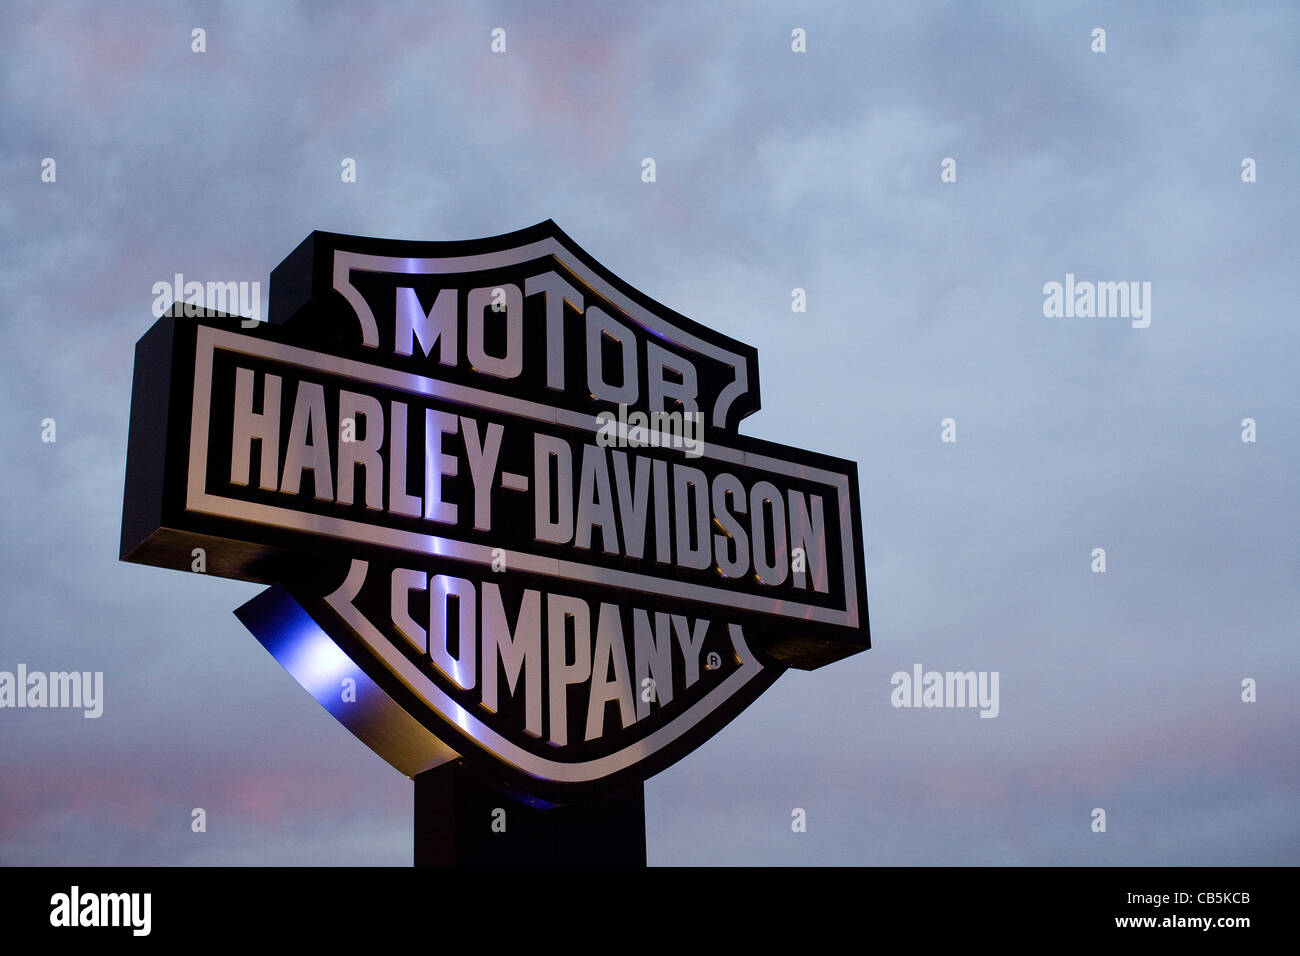 A sign outside of the Harley-Davidson York manufacturing plant.  - Stock Image